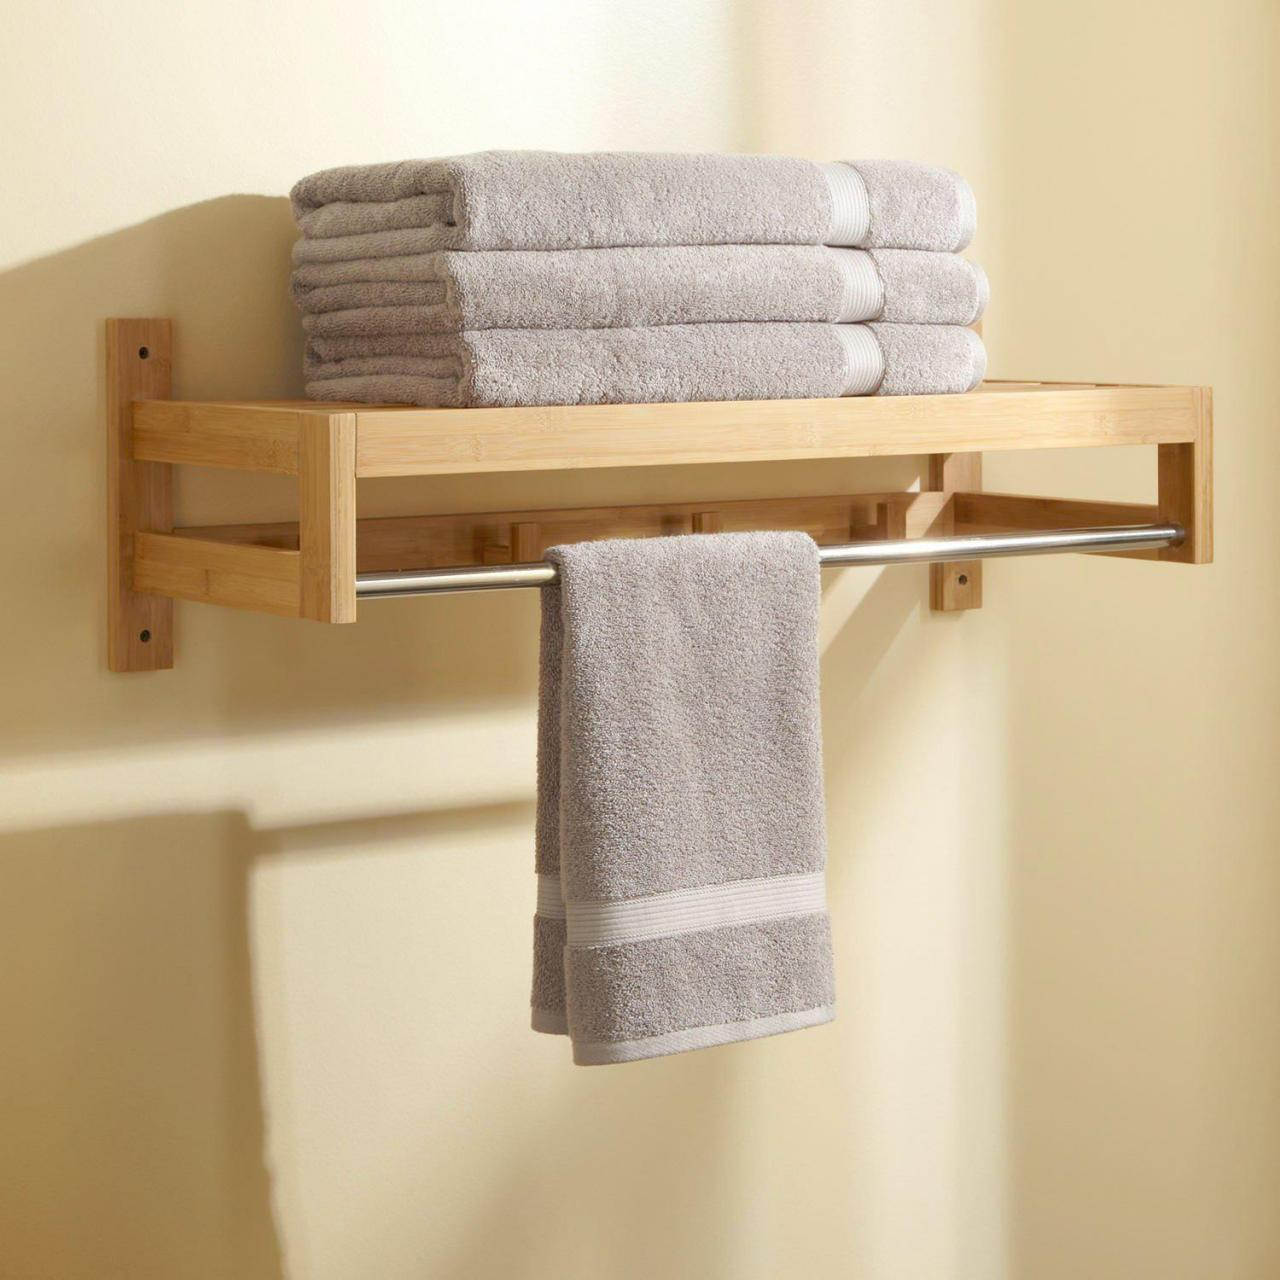 towel stands for bathrooms